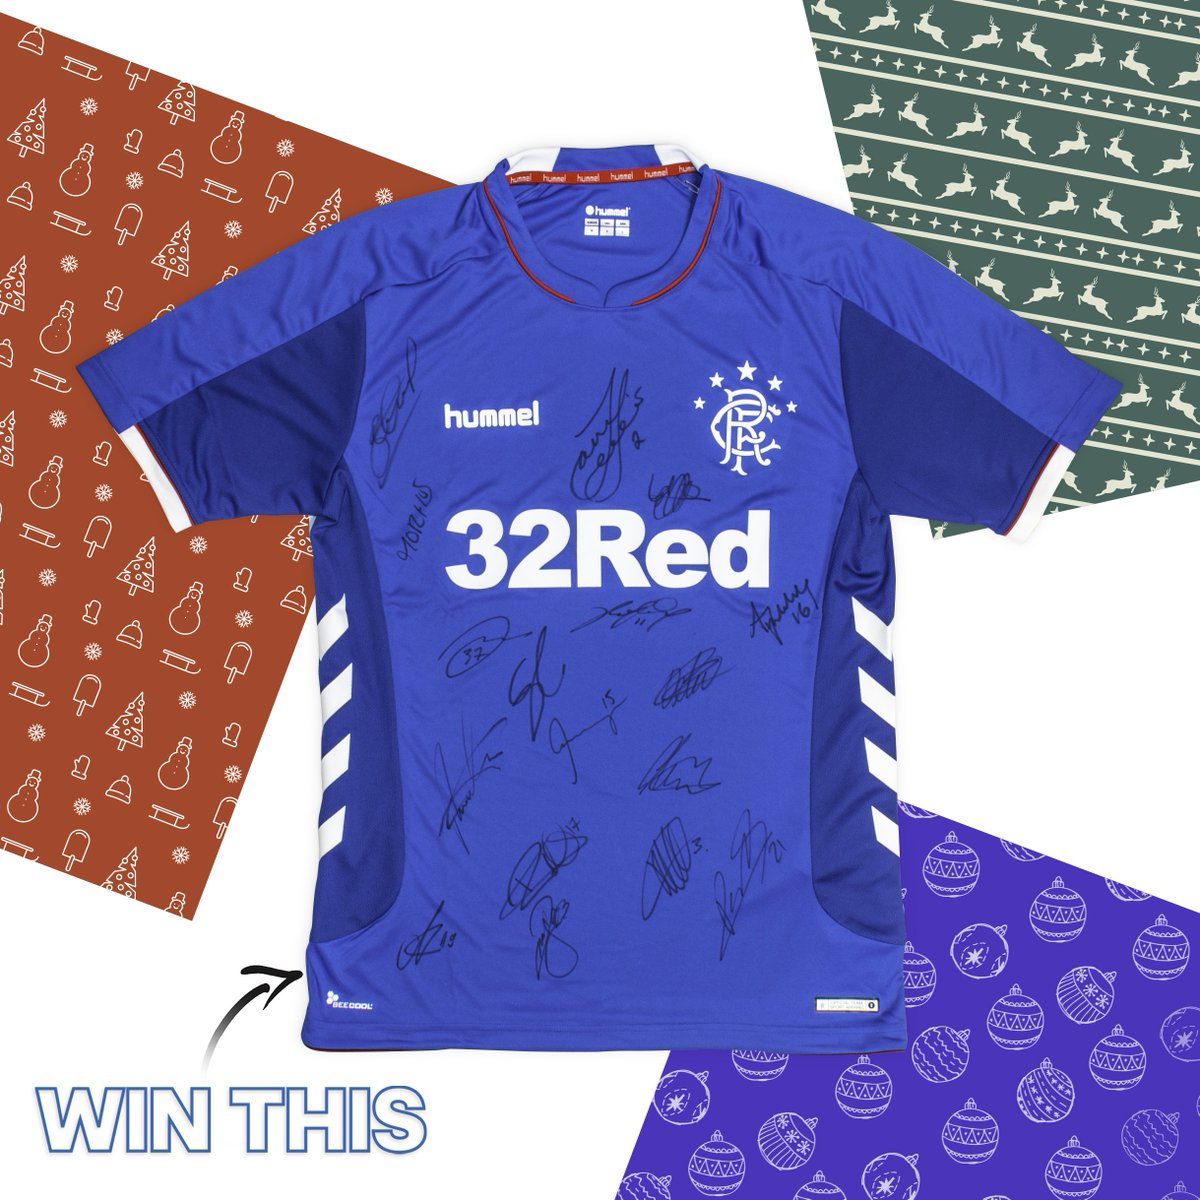 🎁🎄OUR FINAL GIVEAWAY🎄🎁  For our final giveaway... how do you fancy winning a signed 2018/19 @RangersFC home top?  TO ENTER & WIN THE SIGNED JERSEY:  ❤️ LIKE THIS TWEET 👍🏼 FOLLOW US 💬 RT  Extra entries via Facebook & Instagram!  Winner announced Christmas Eve! Go, Go, Go! ⏰